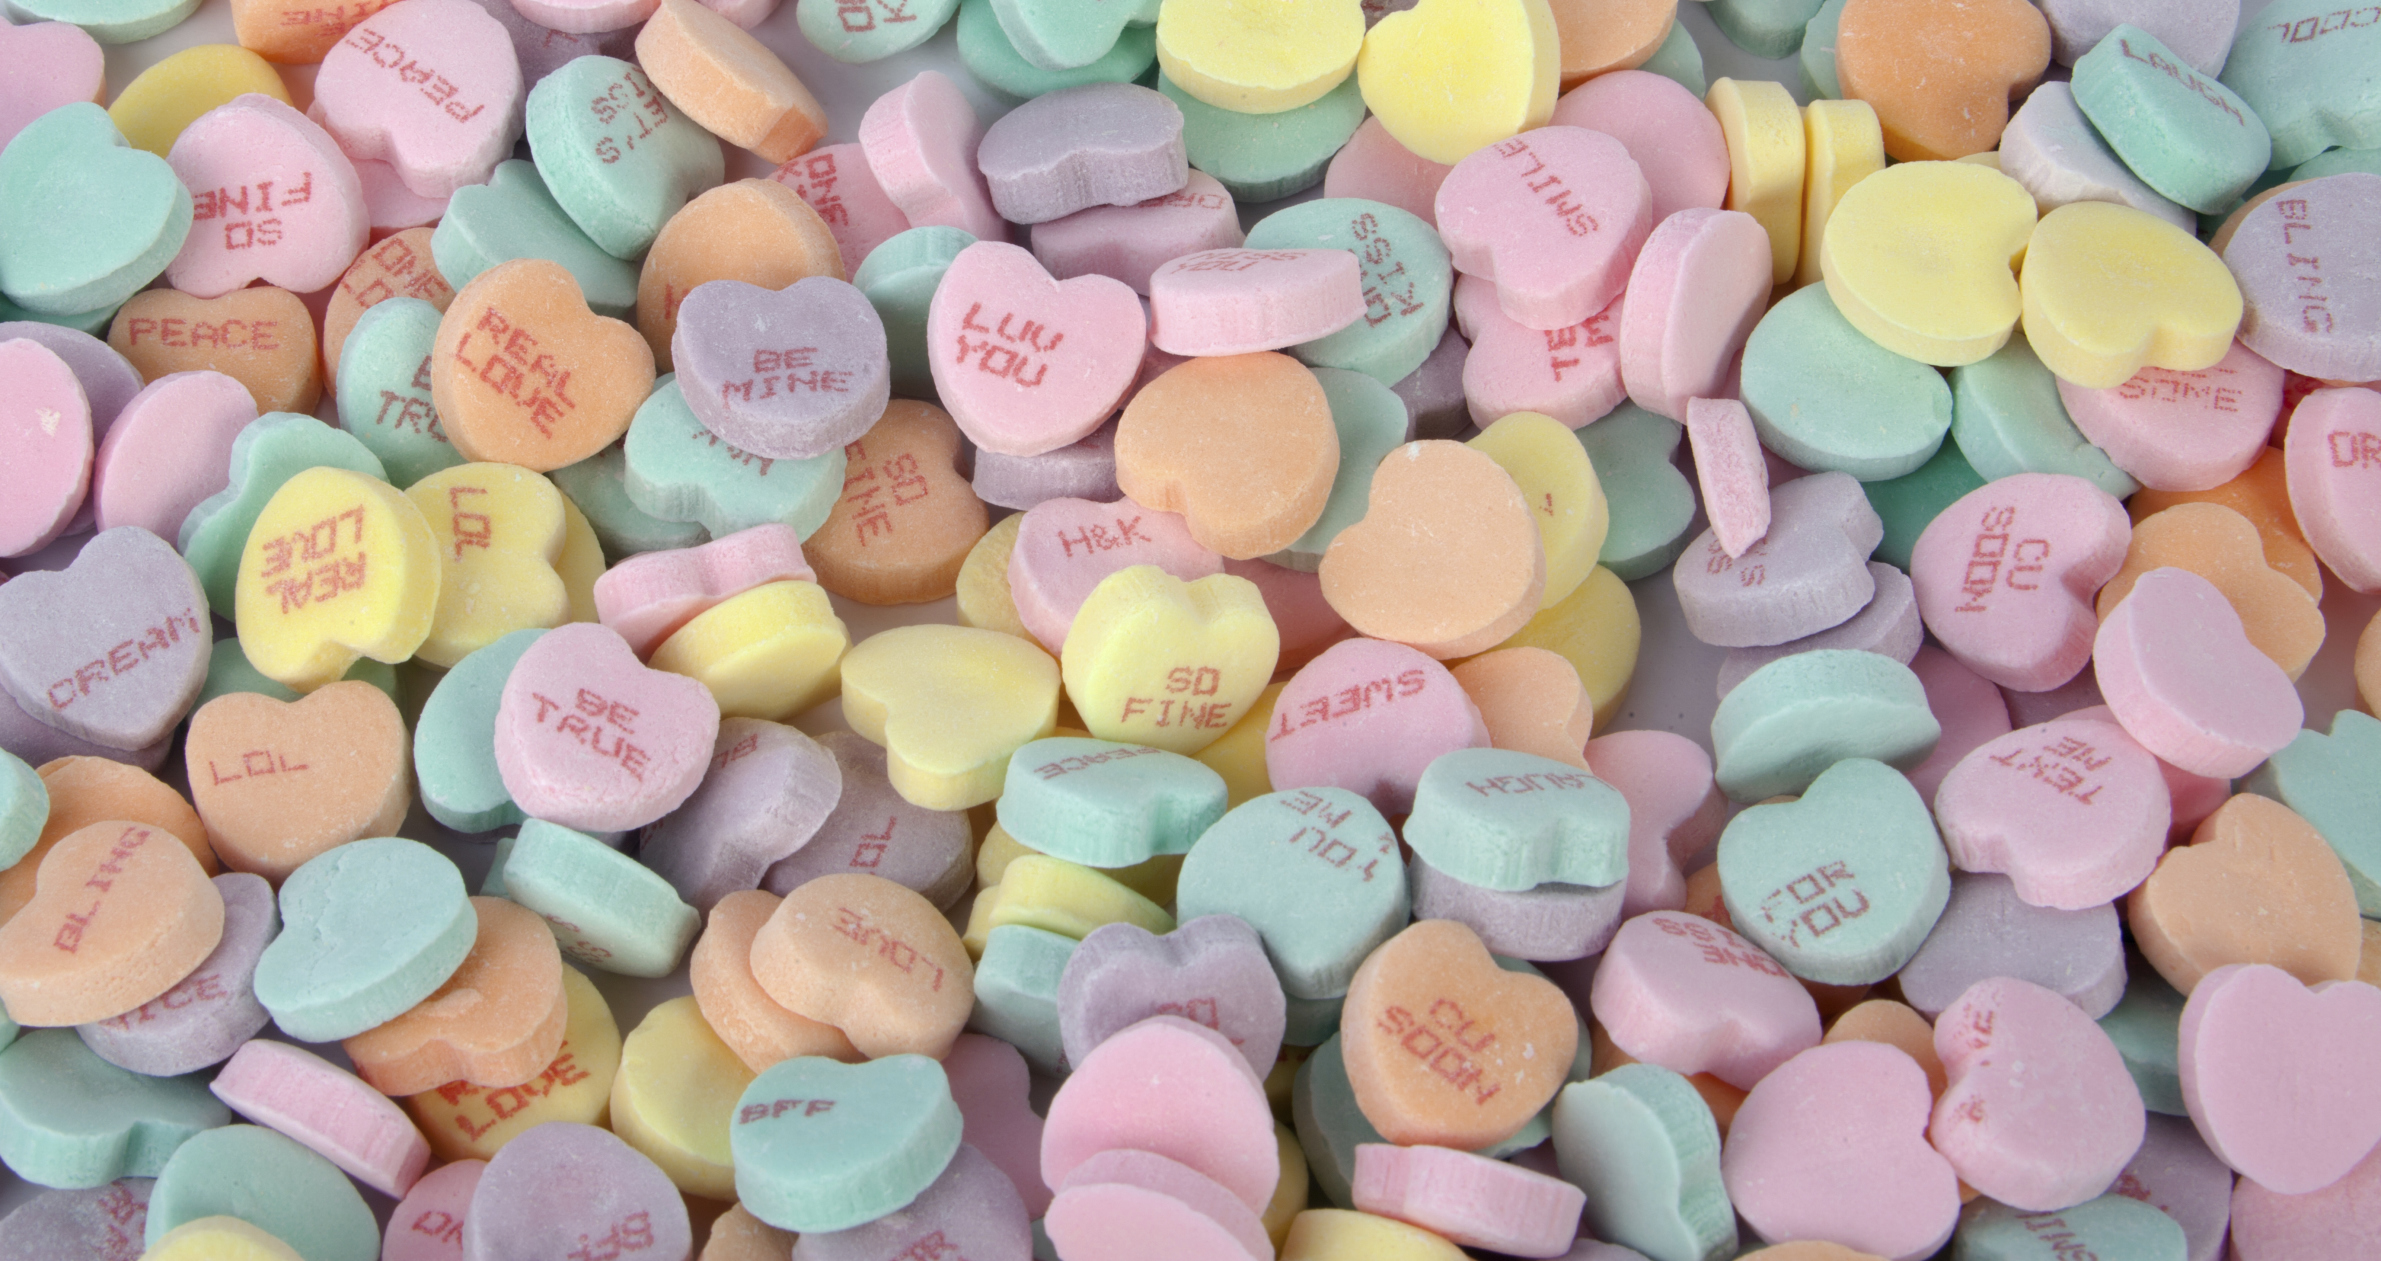 Sweethearts will be missing from store shelves this Valentine's Day